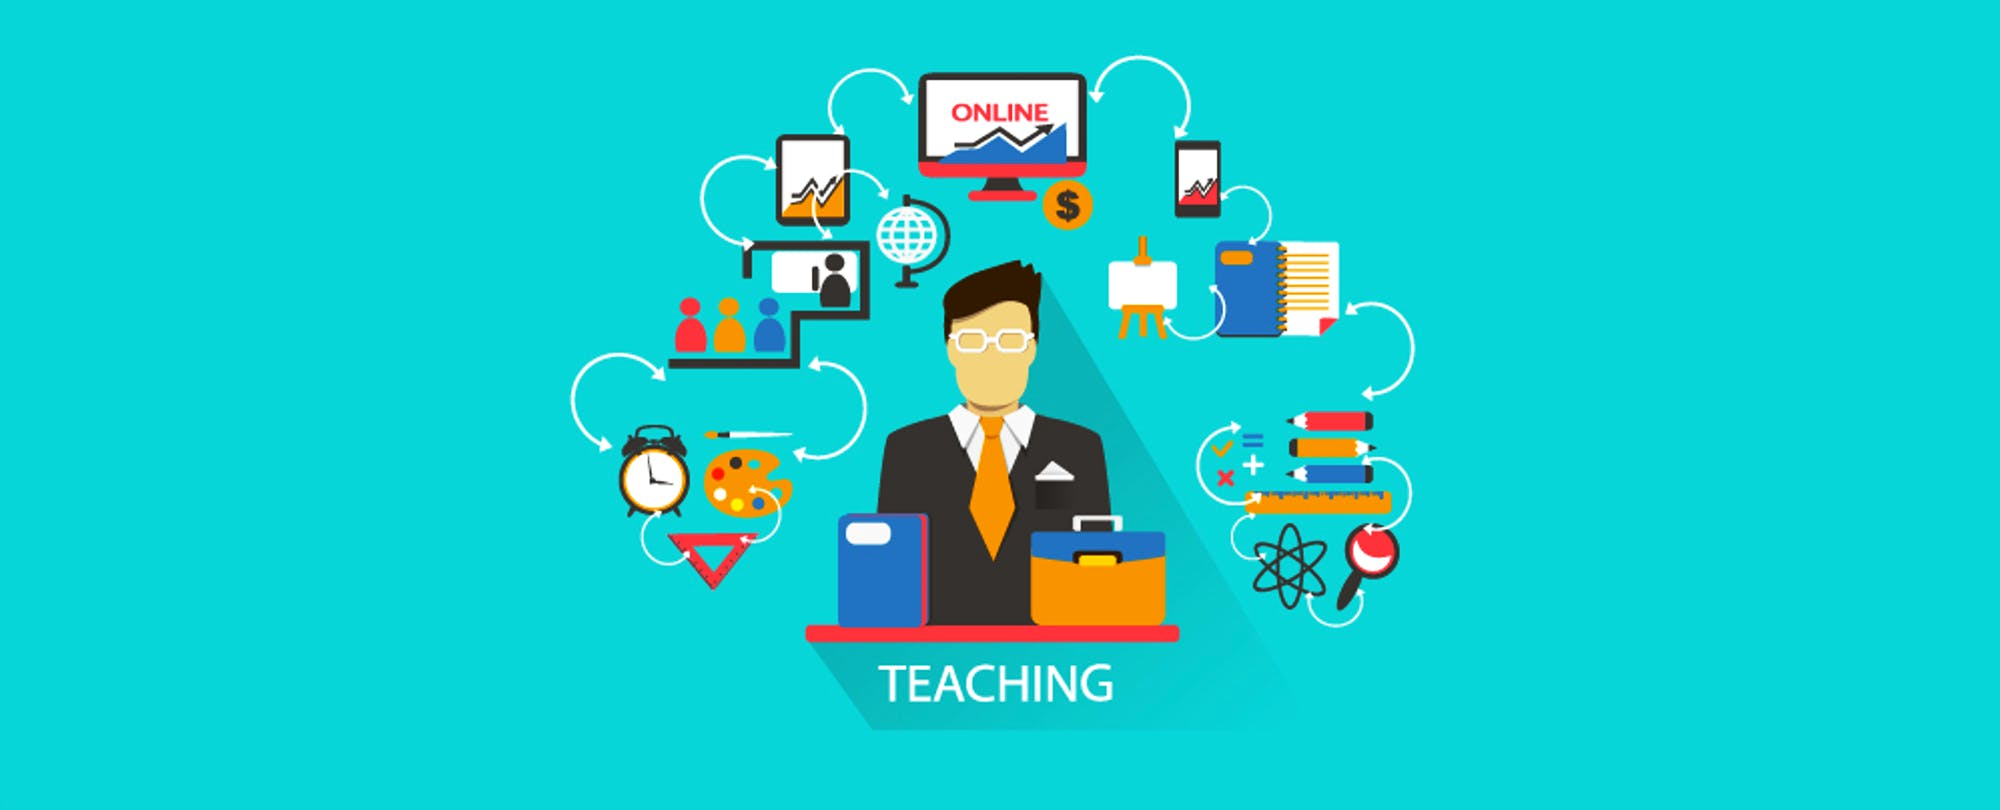 4 Essential Tips for Teaching an Effective Online Course